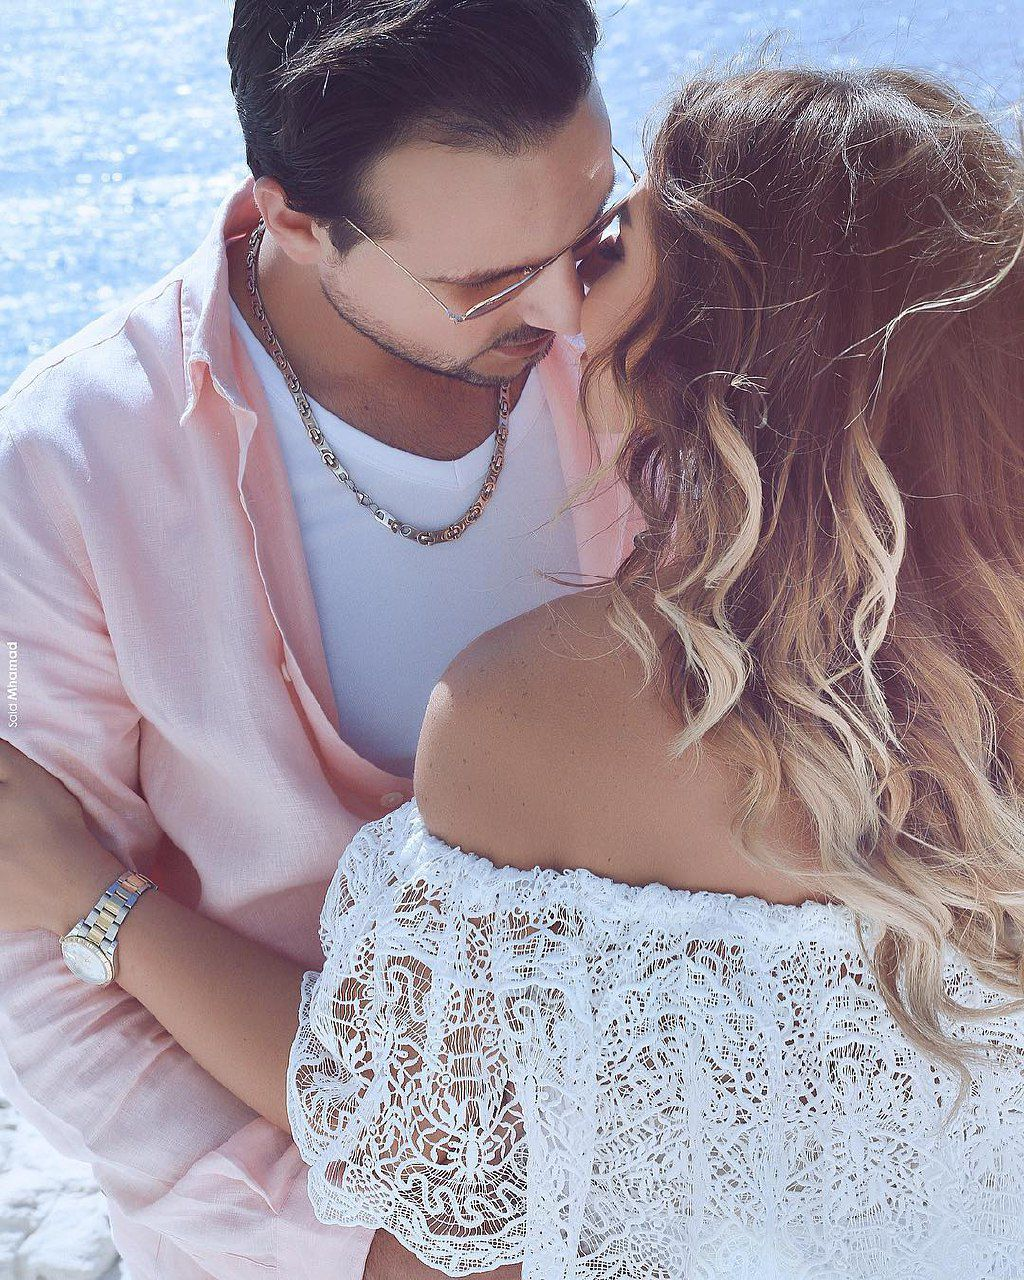 images of love couple